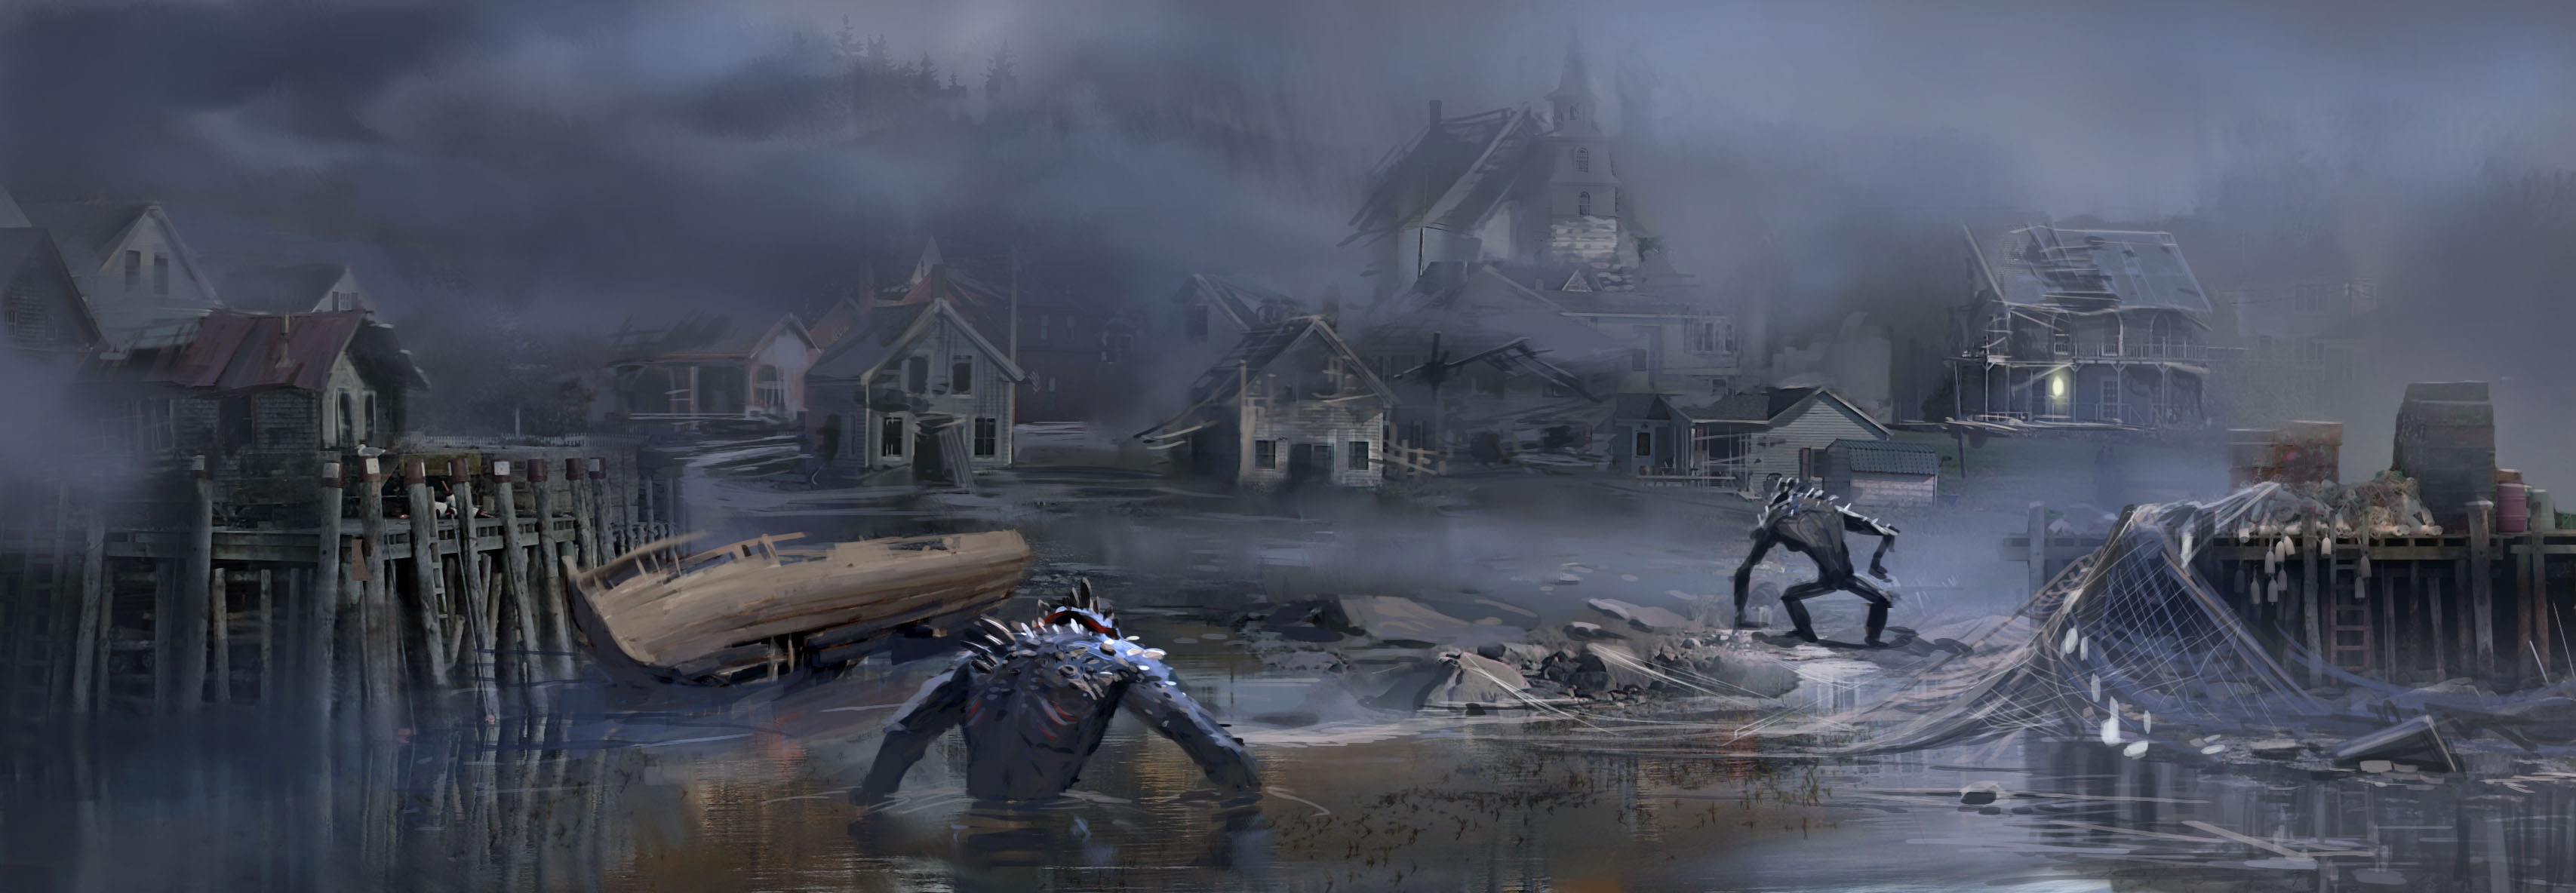 They All Died Out And Washed Against The S Maine Already Has A Certain Spooky Atmosphere You Think About Stephen King